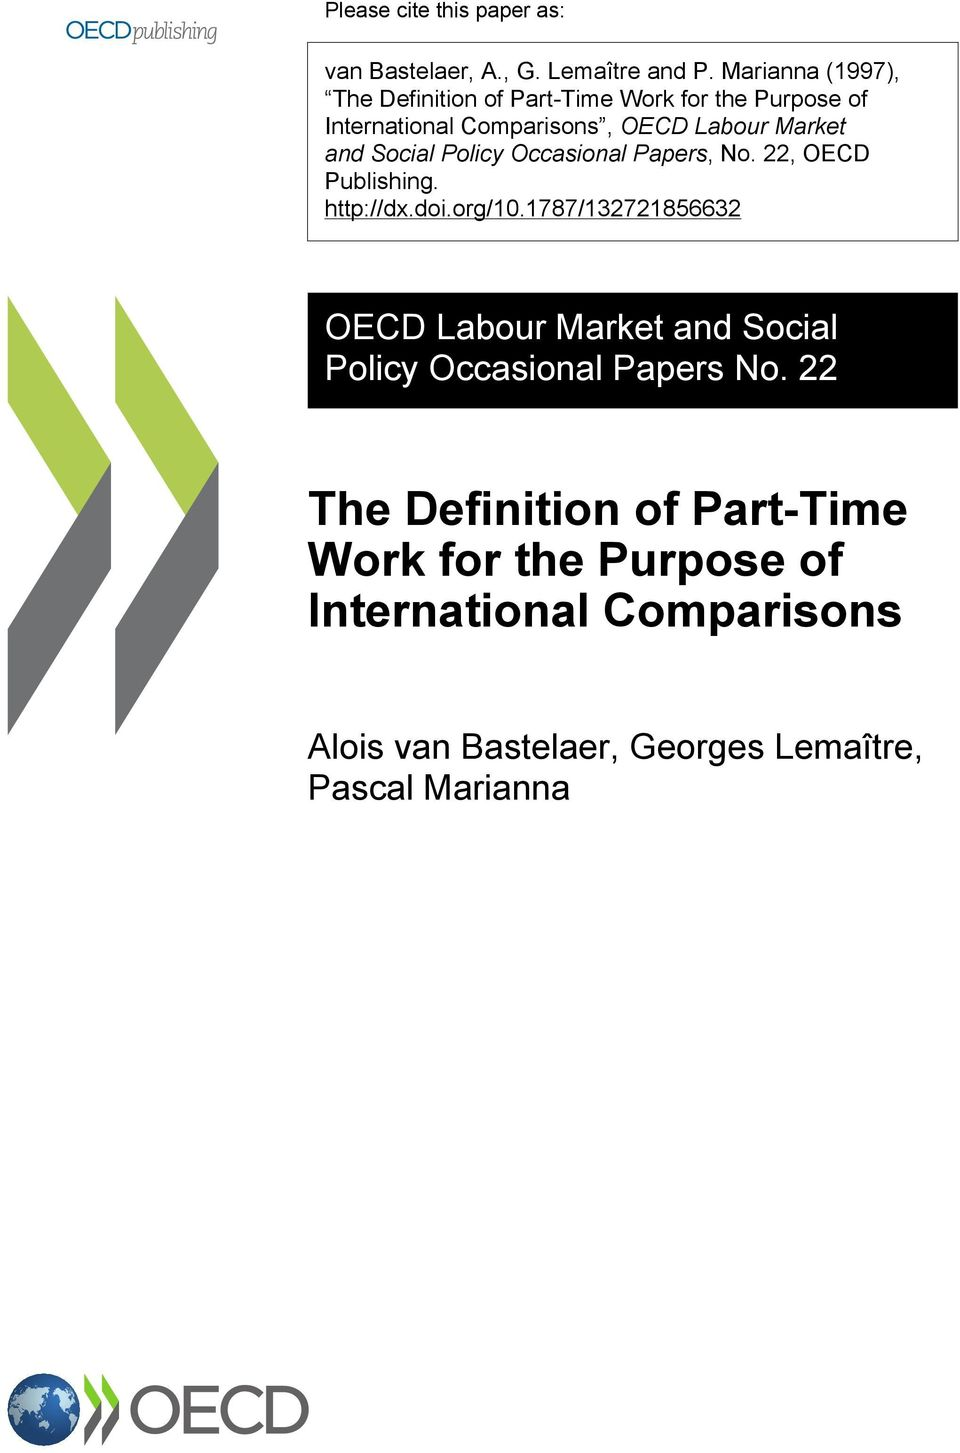 Social Policy Occasional Papers, No. 22, OECD Publishing. http://dx.doi.org/10.